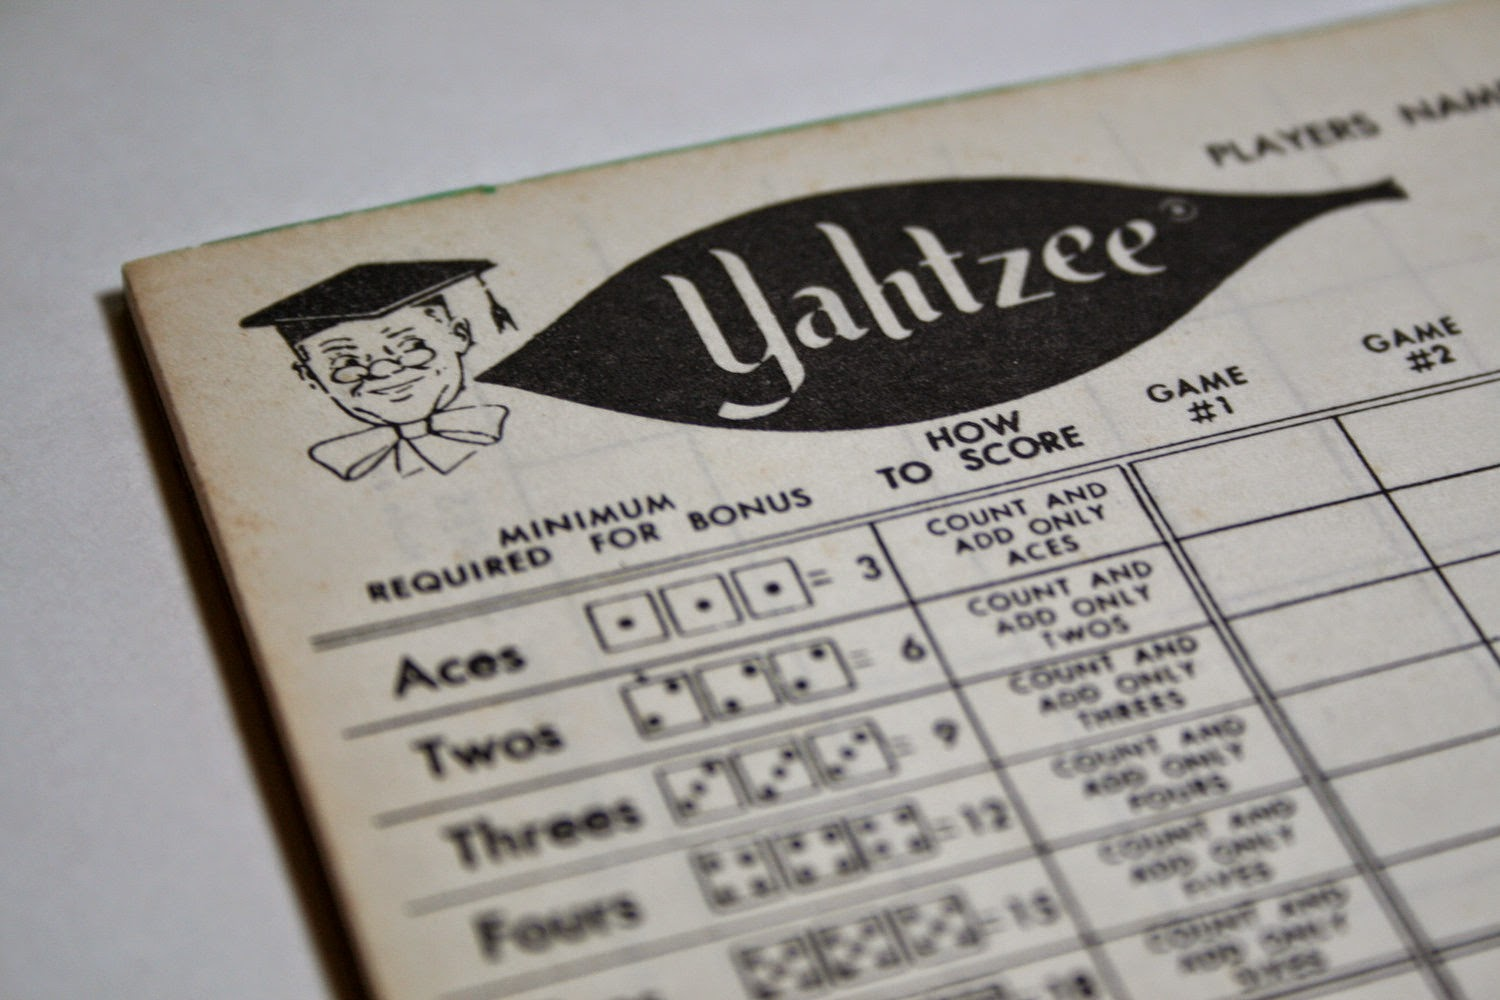 photograph regarding Yahtzee Printable Score Sheets known as Yahtzee On-line: Printable Yahtzee Rating Sheet